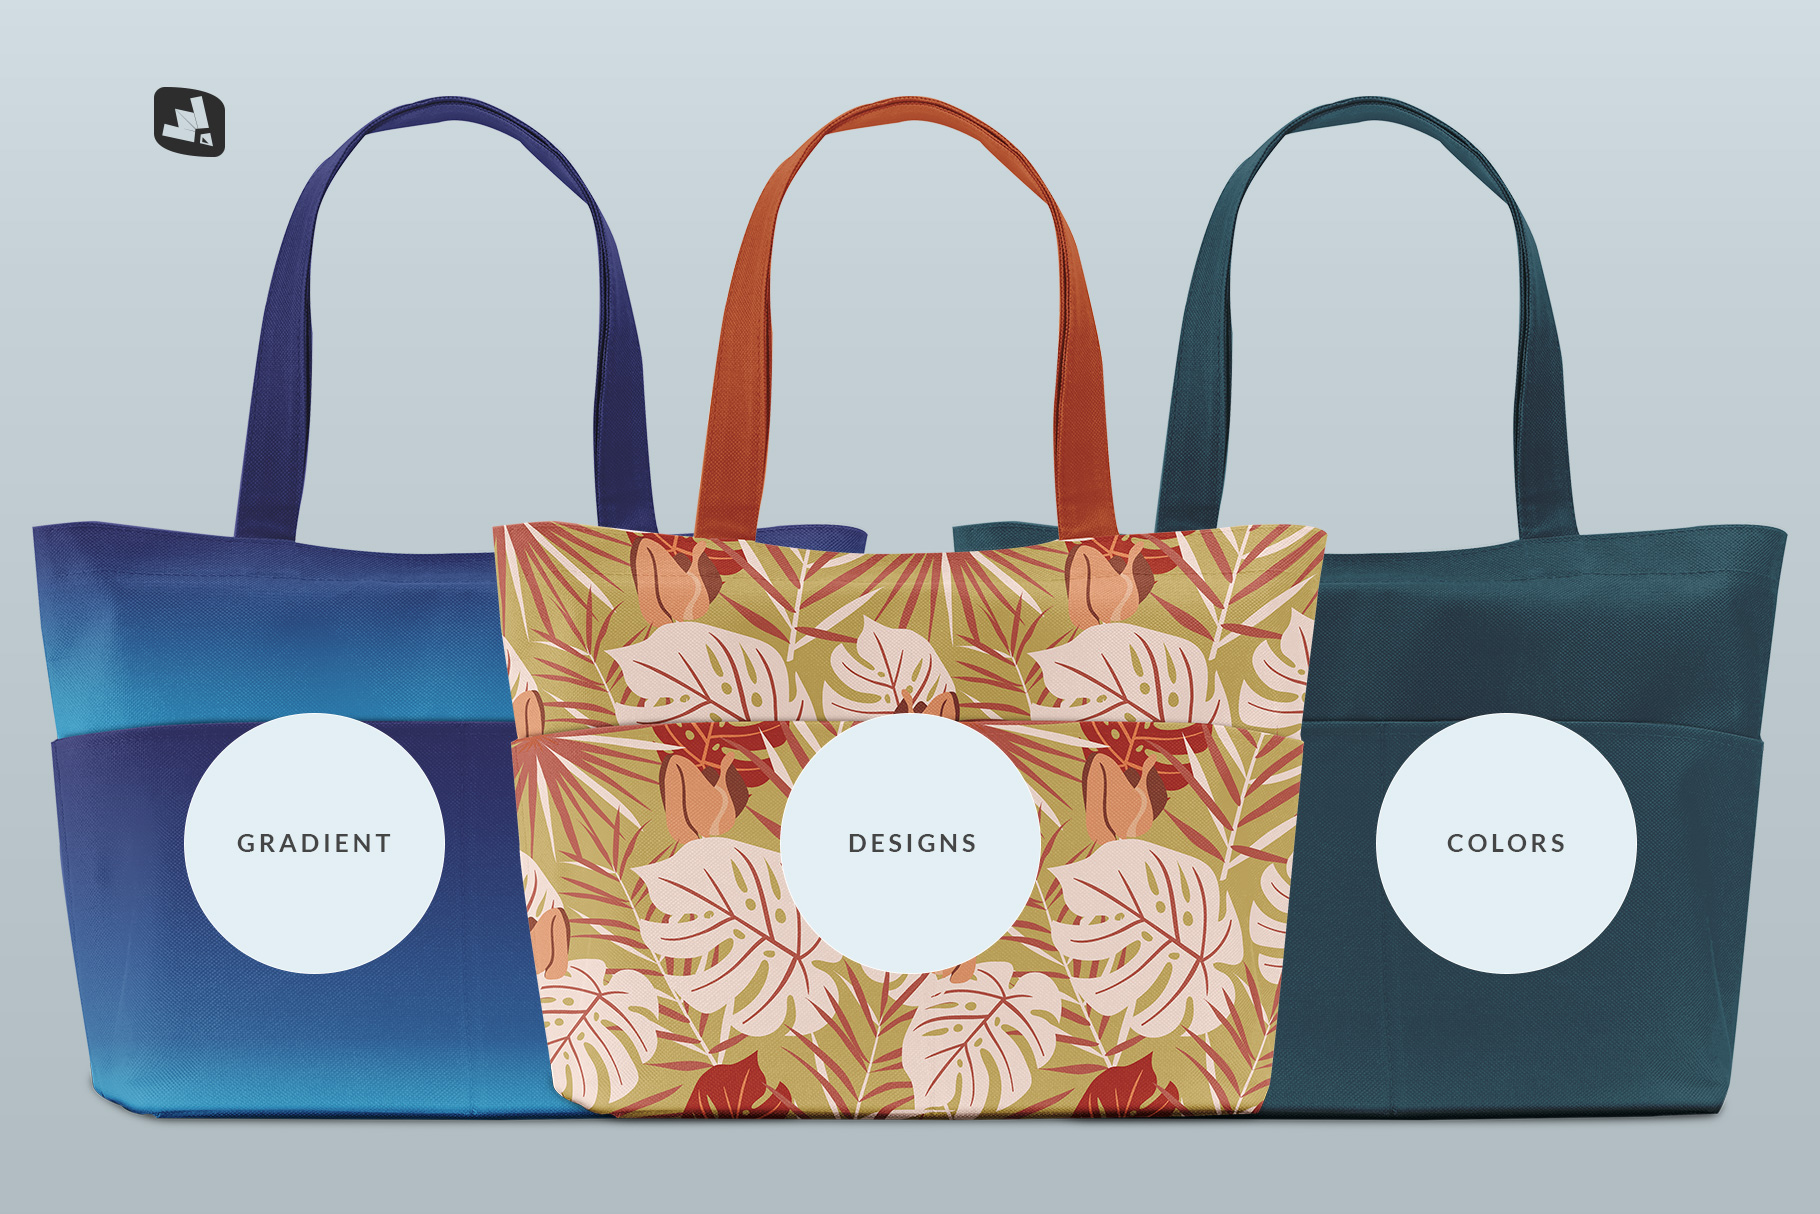 types of the front view fabric shopping bag mockup